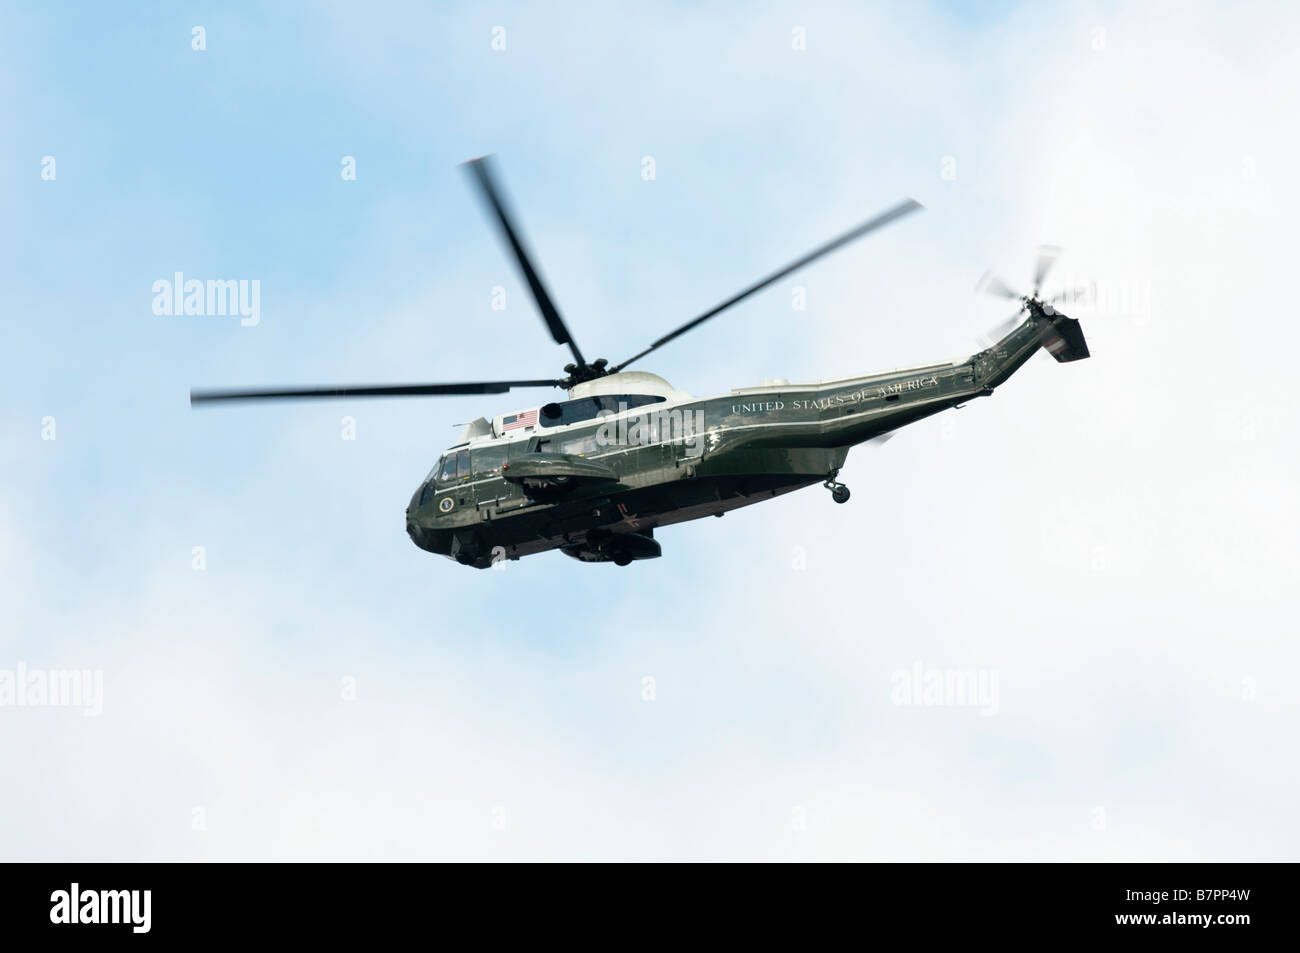 Marine One is the call sign given to military helicopters that carry U.S. presidents including this VH-3D Sikorsky Stock Photo